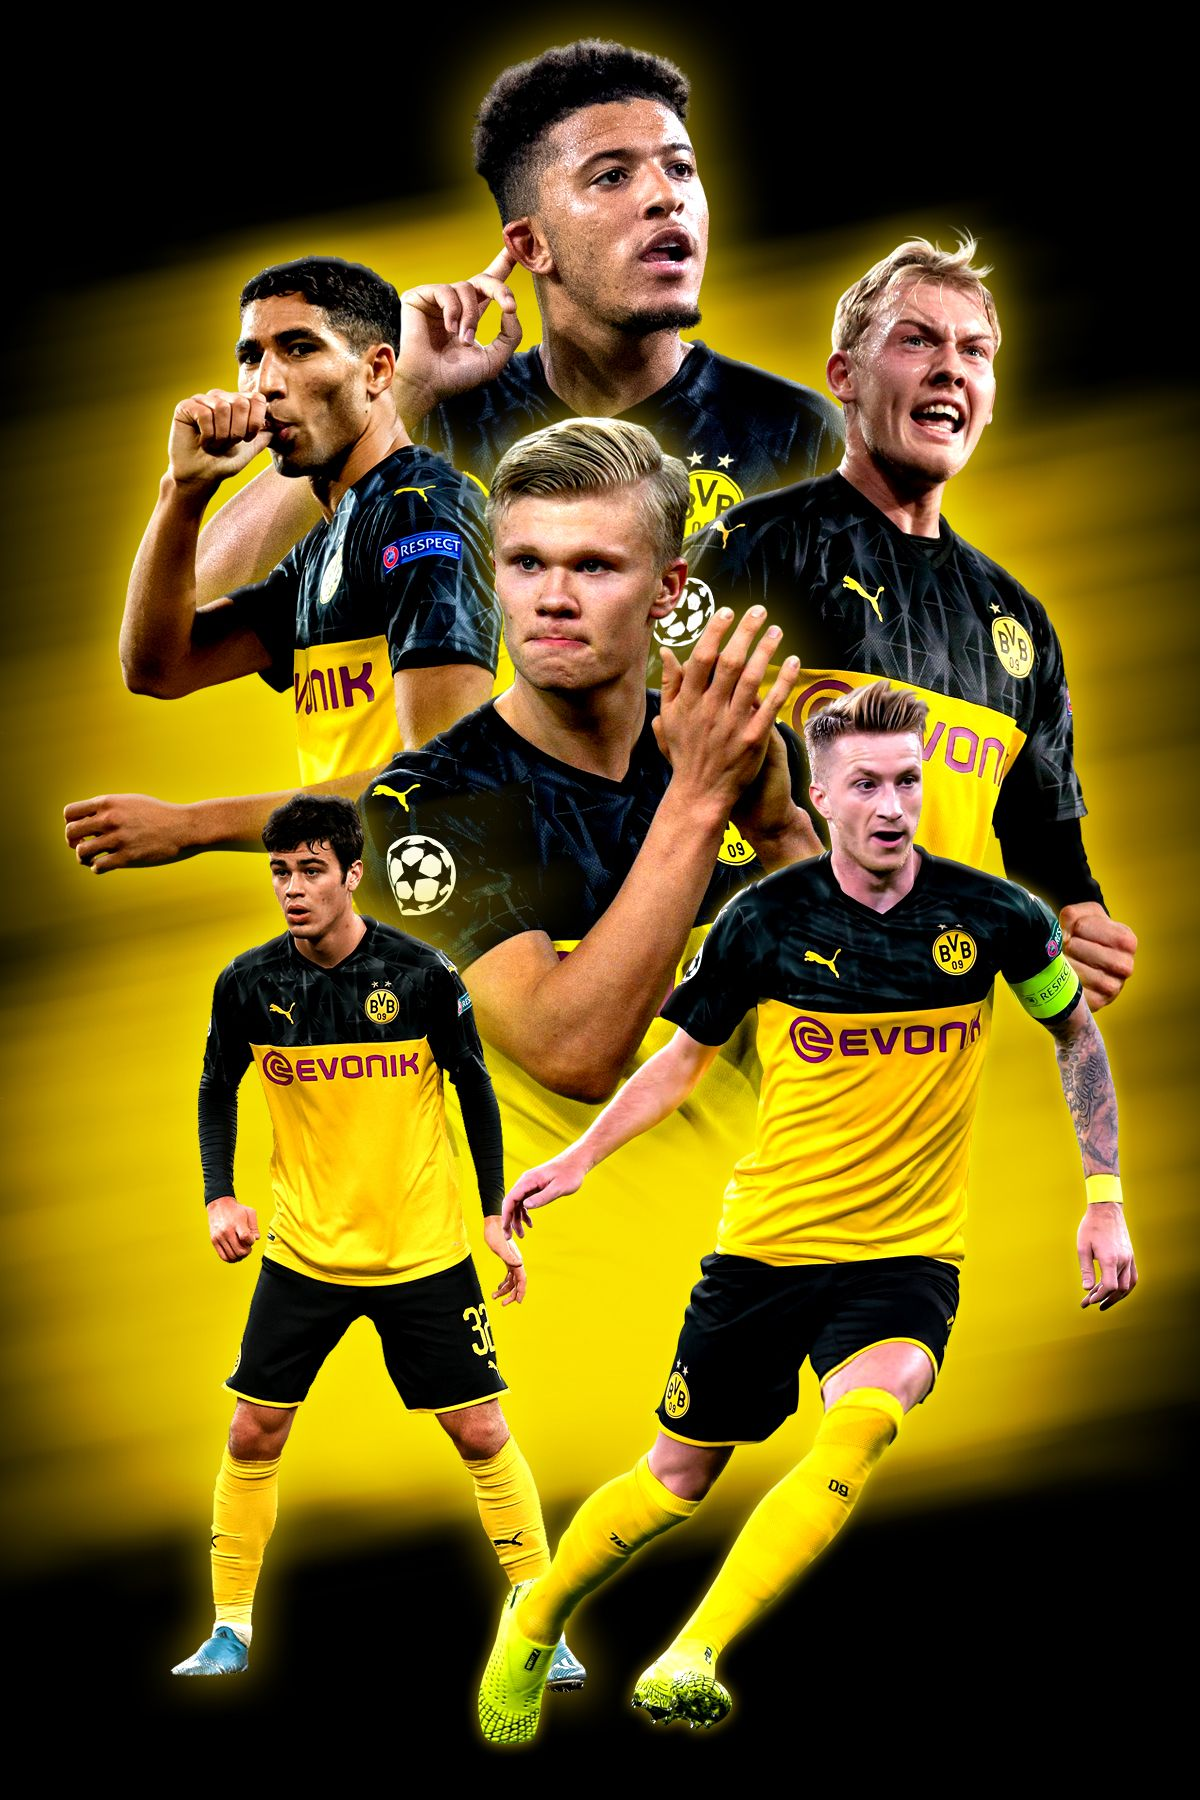 Borussia Dortmund Poster In 2020 Soccer Guys Soccer Photography Football Poster